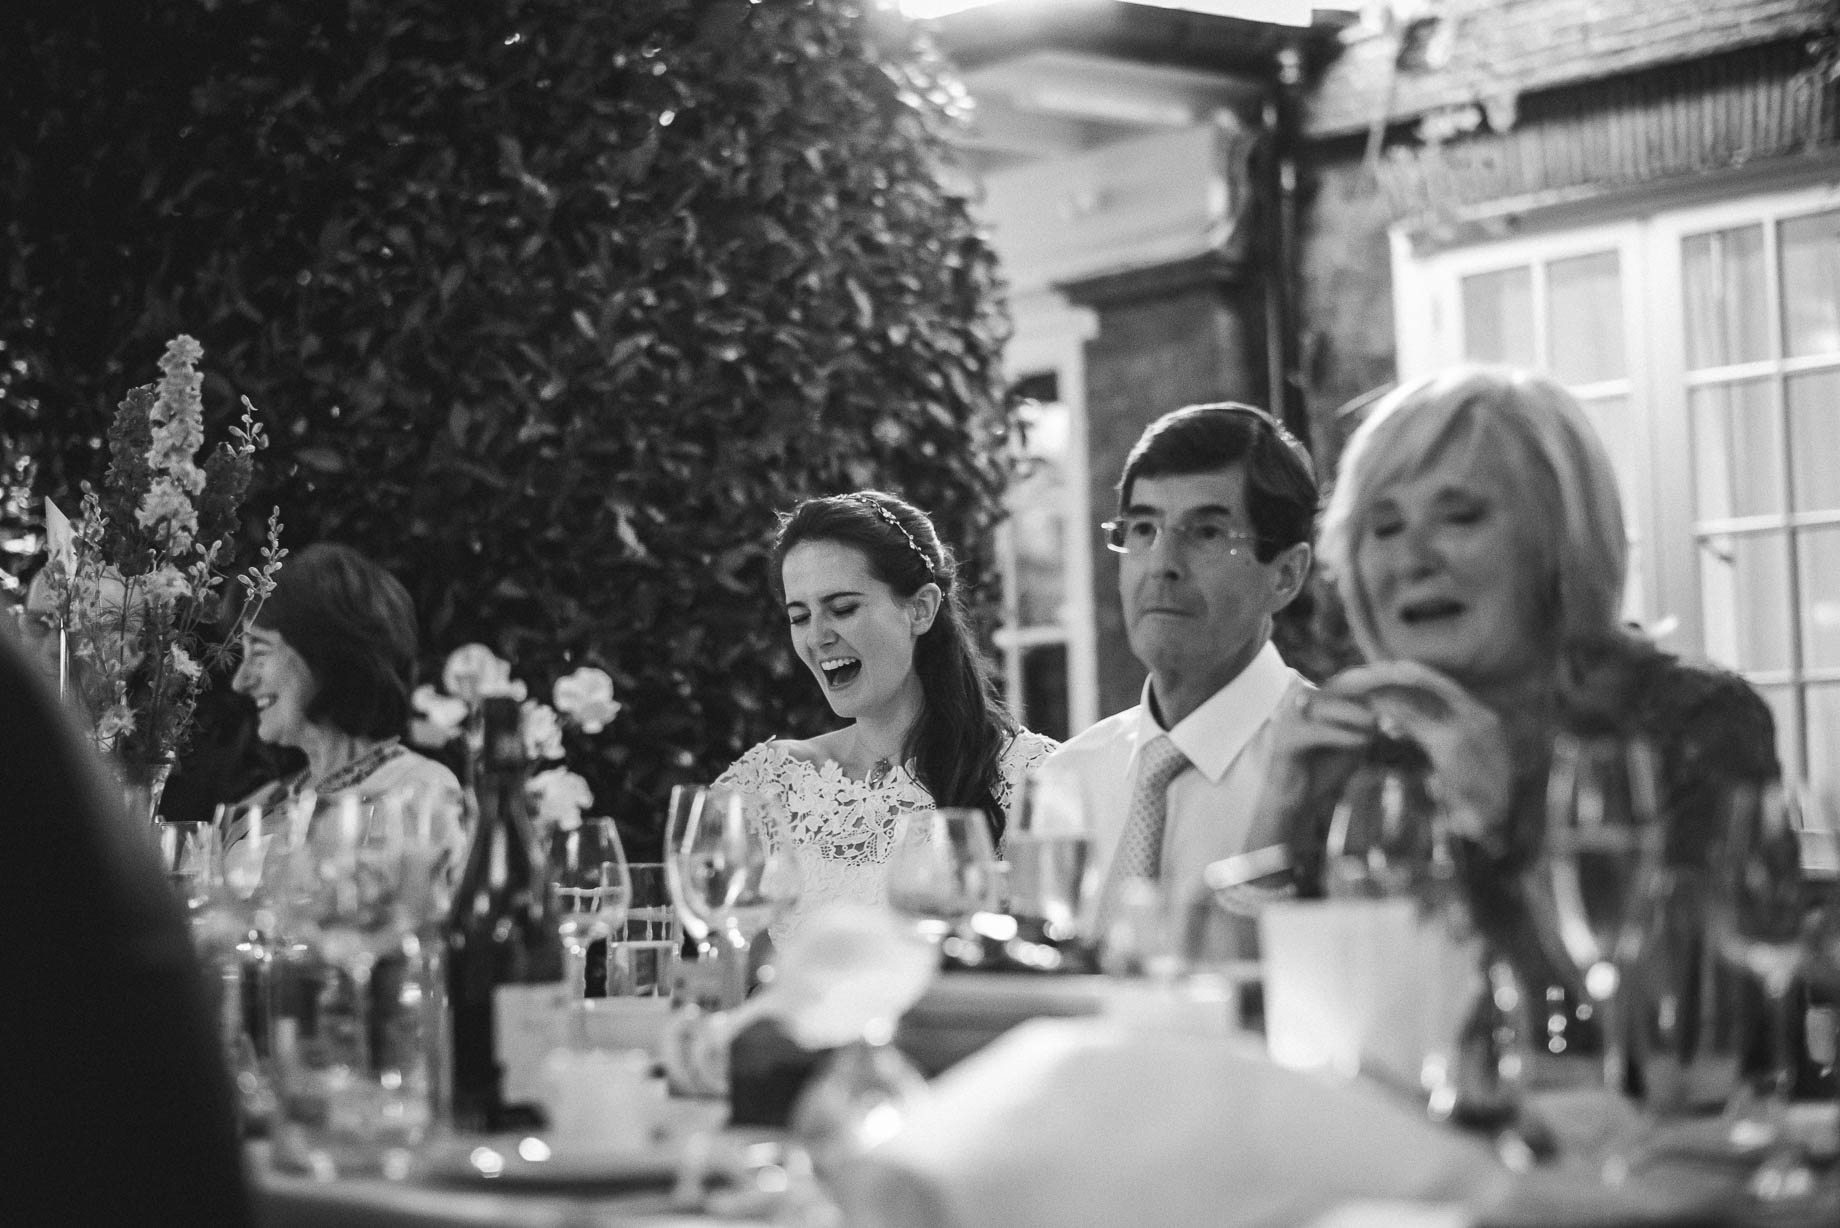 London wedding photography - Claire and JW - Guy Collier Photography (137 of 153)